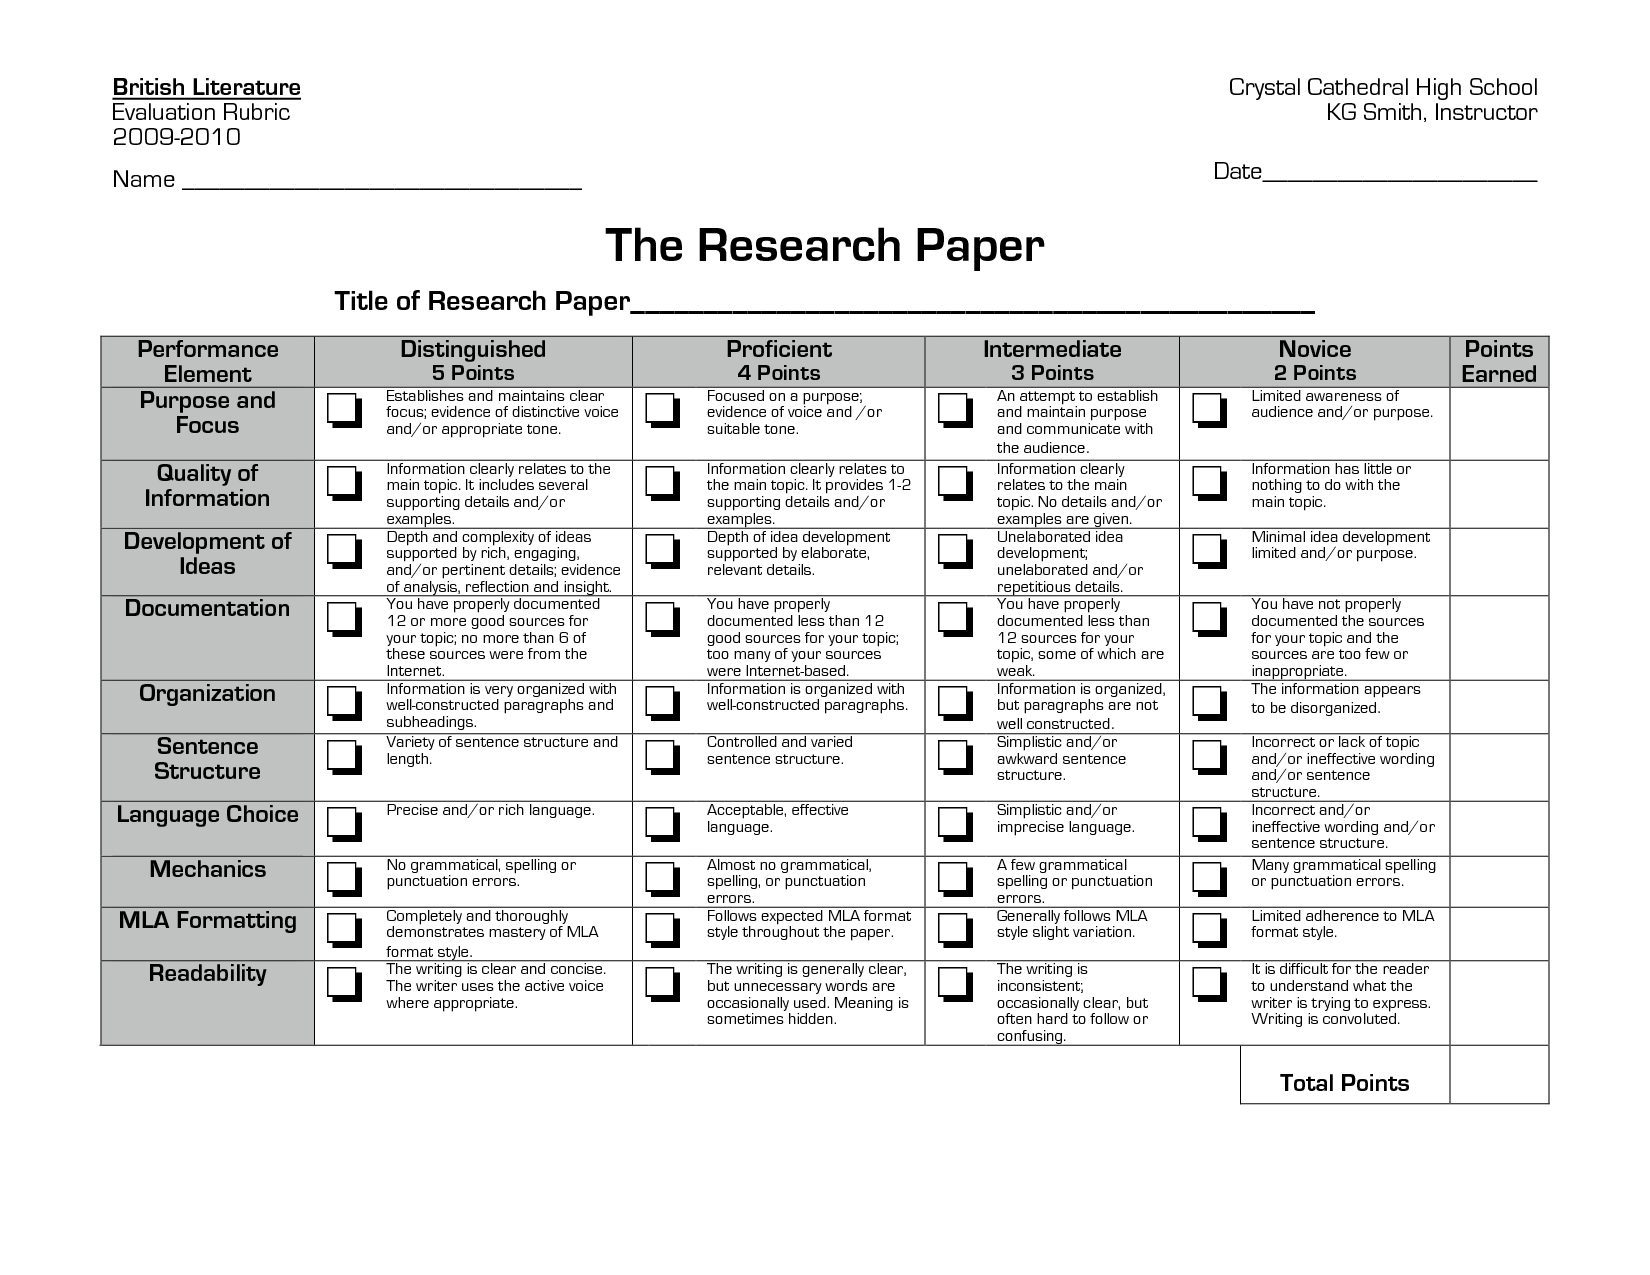 High school science research paper